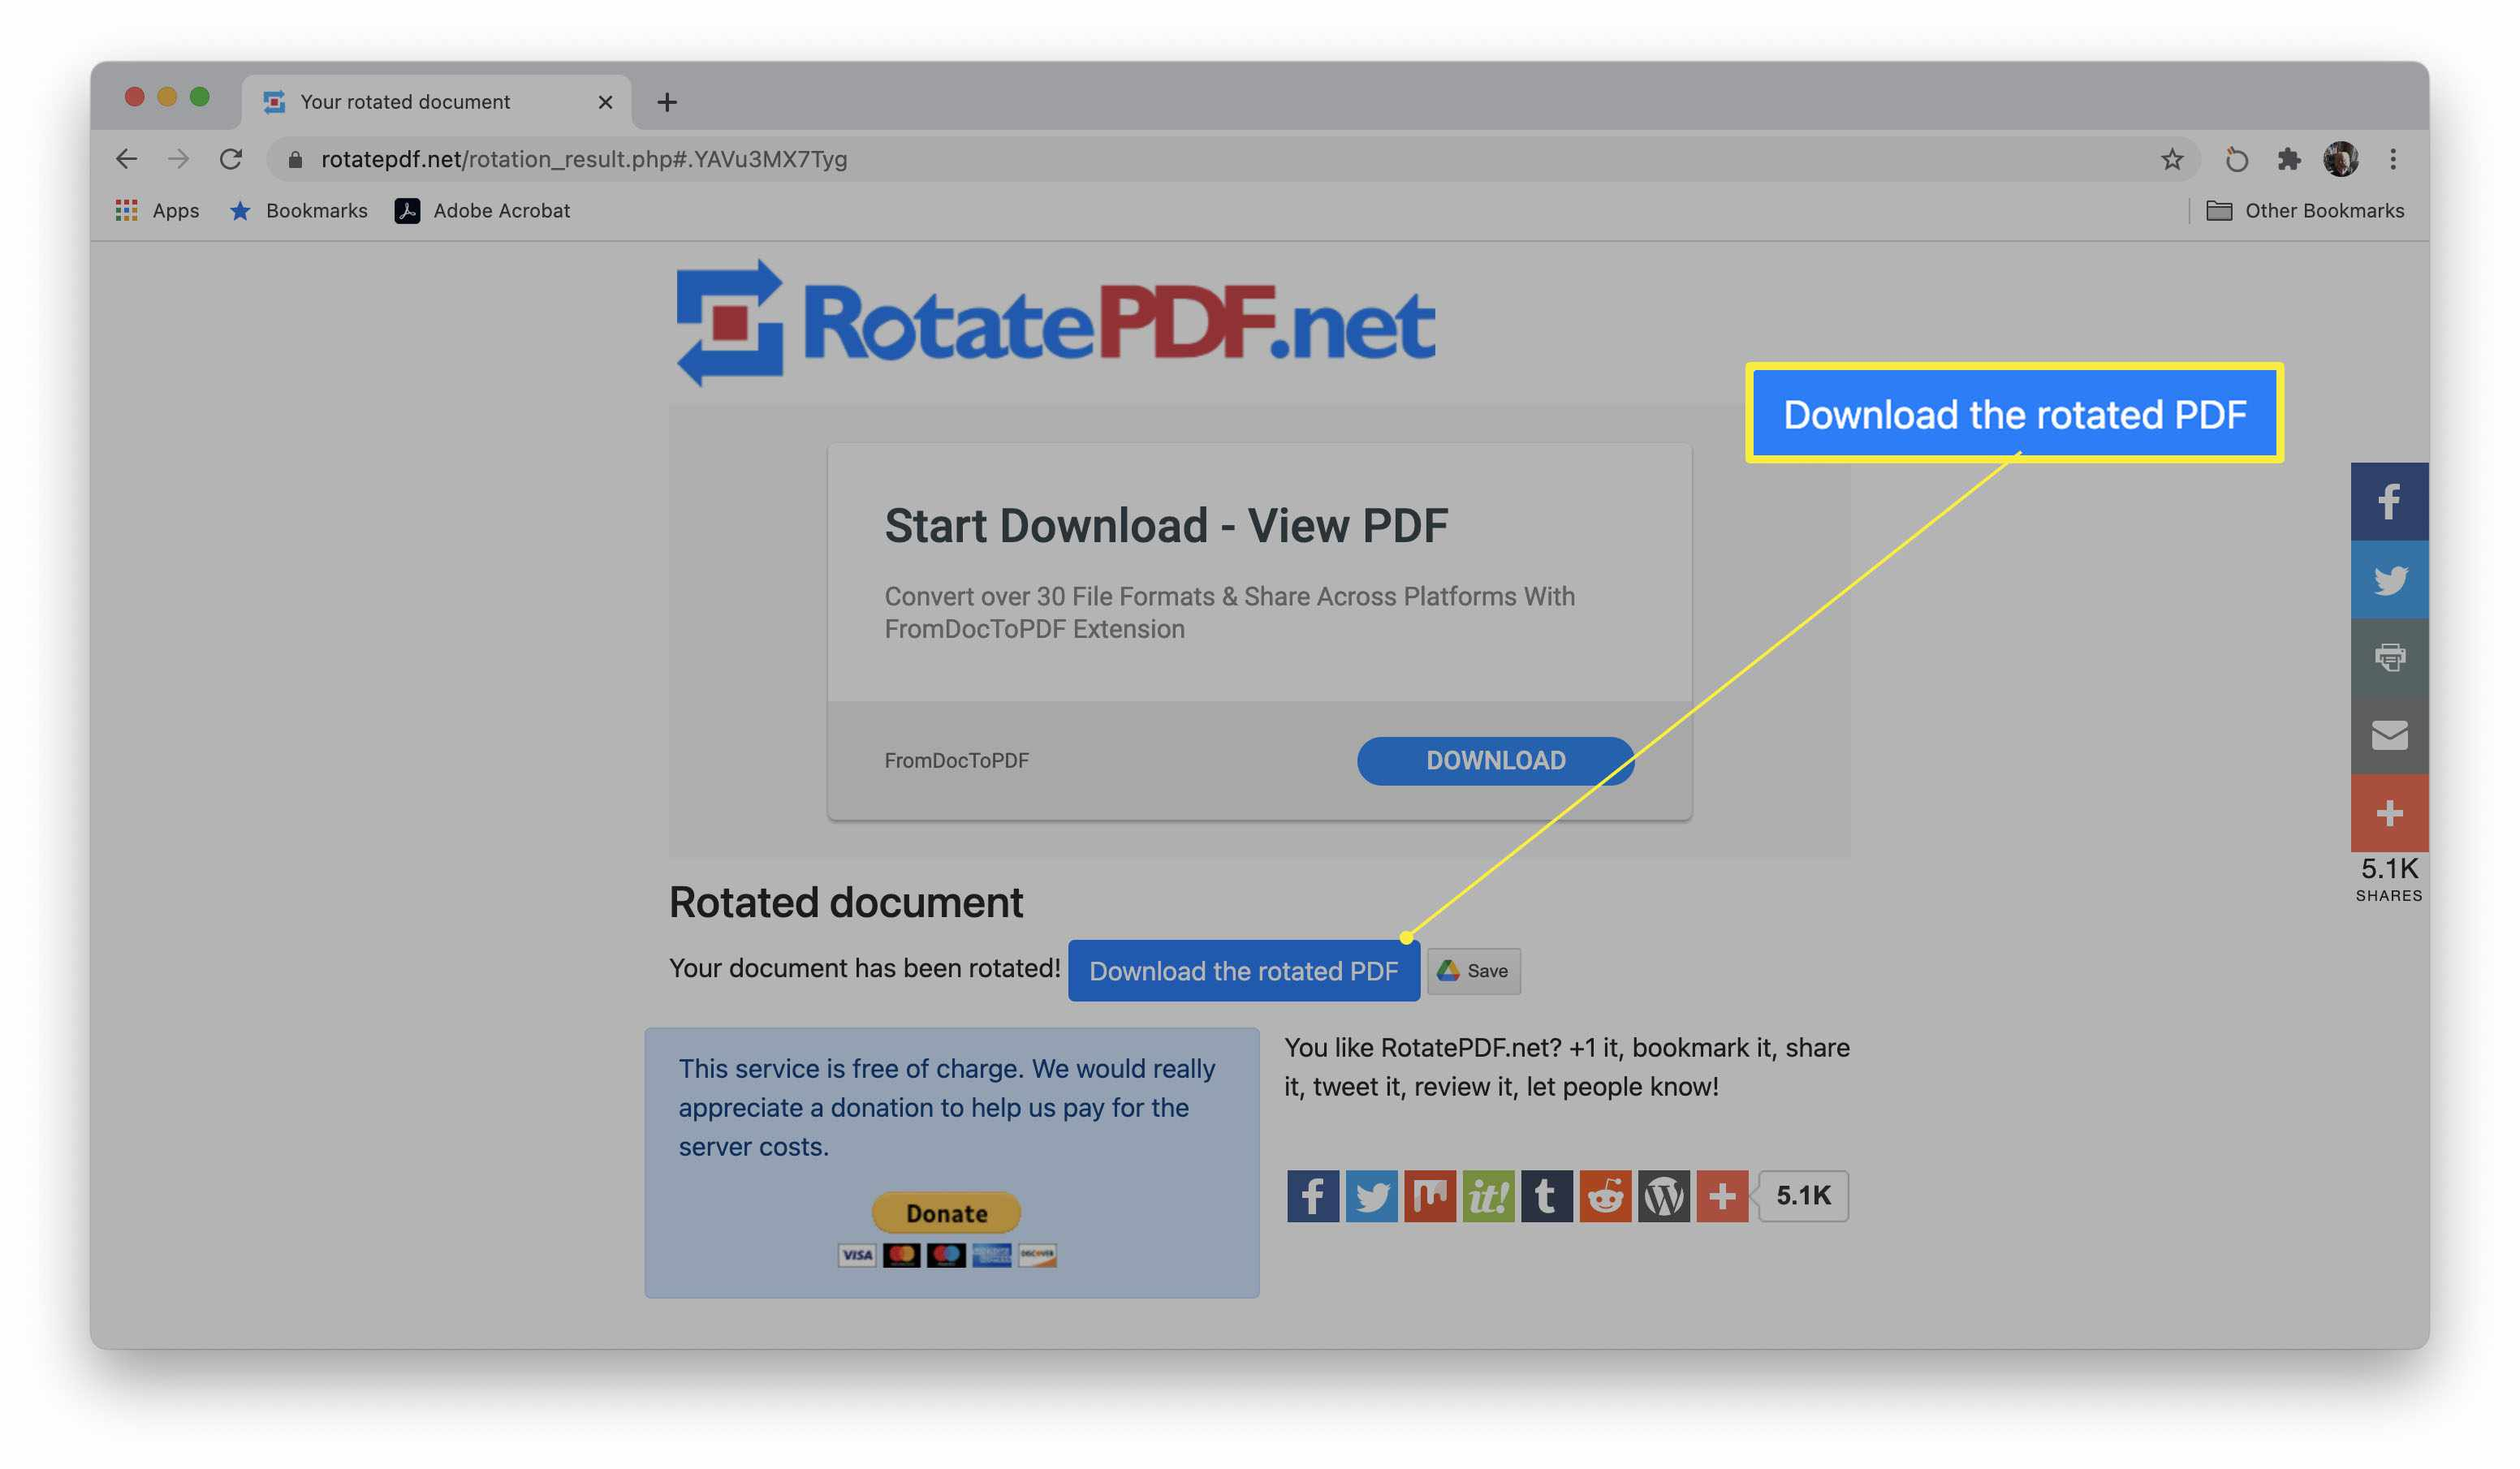 RotatePDF website with Download the rotated PDF button highlighted